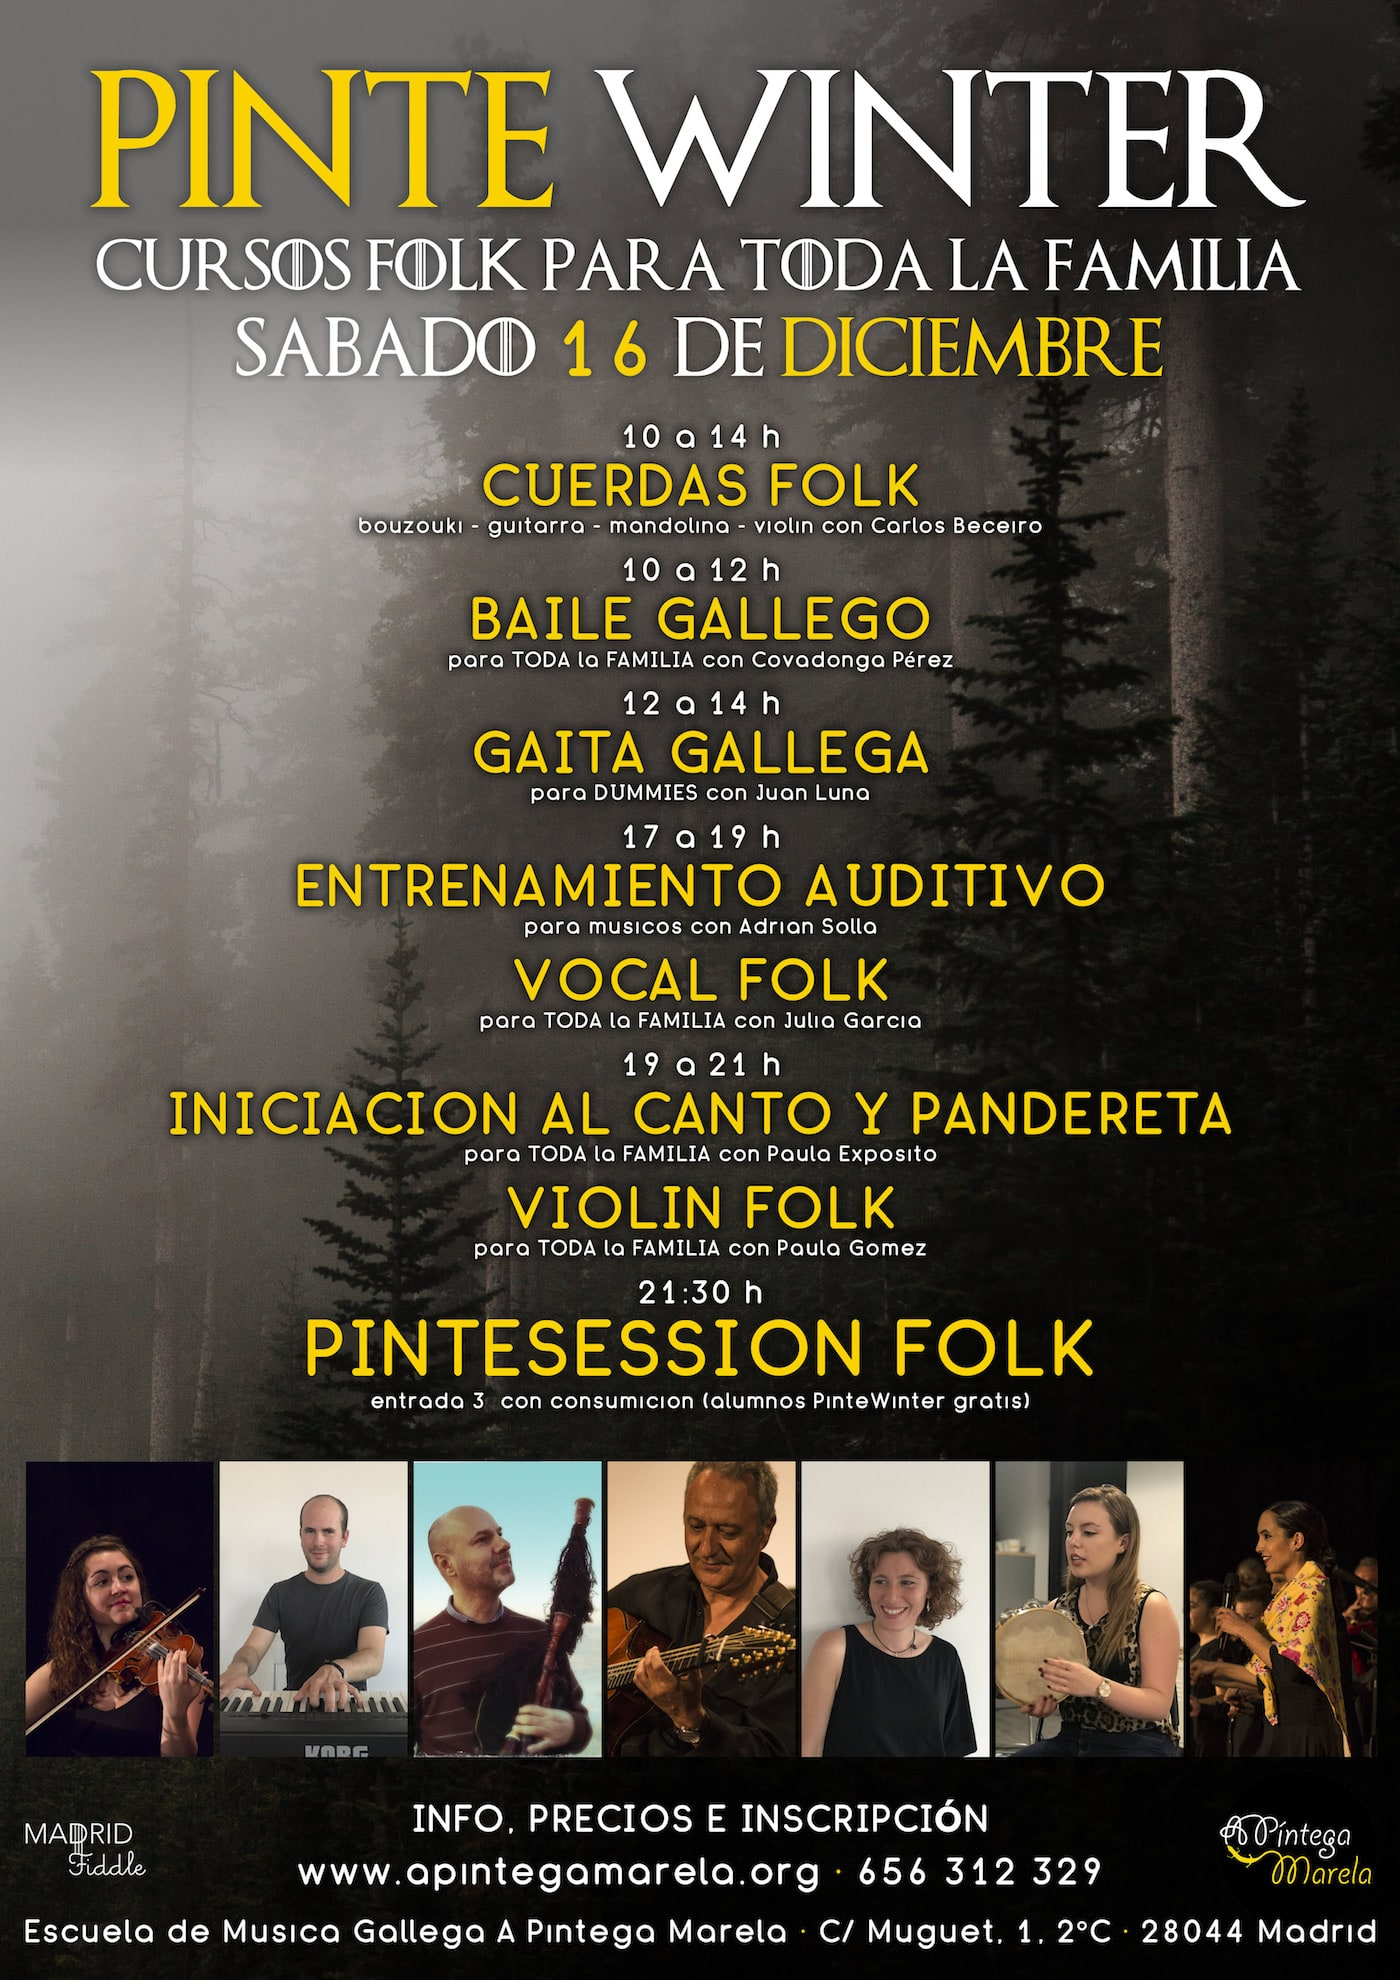 Cartel PinteWinter 2017